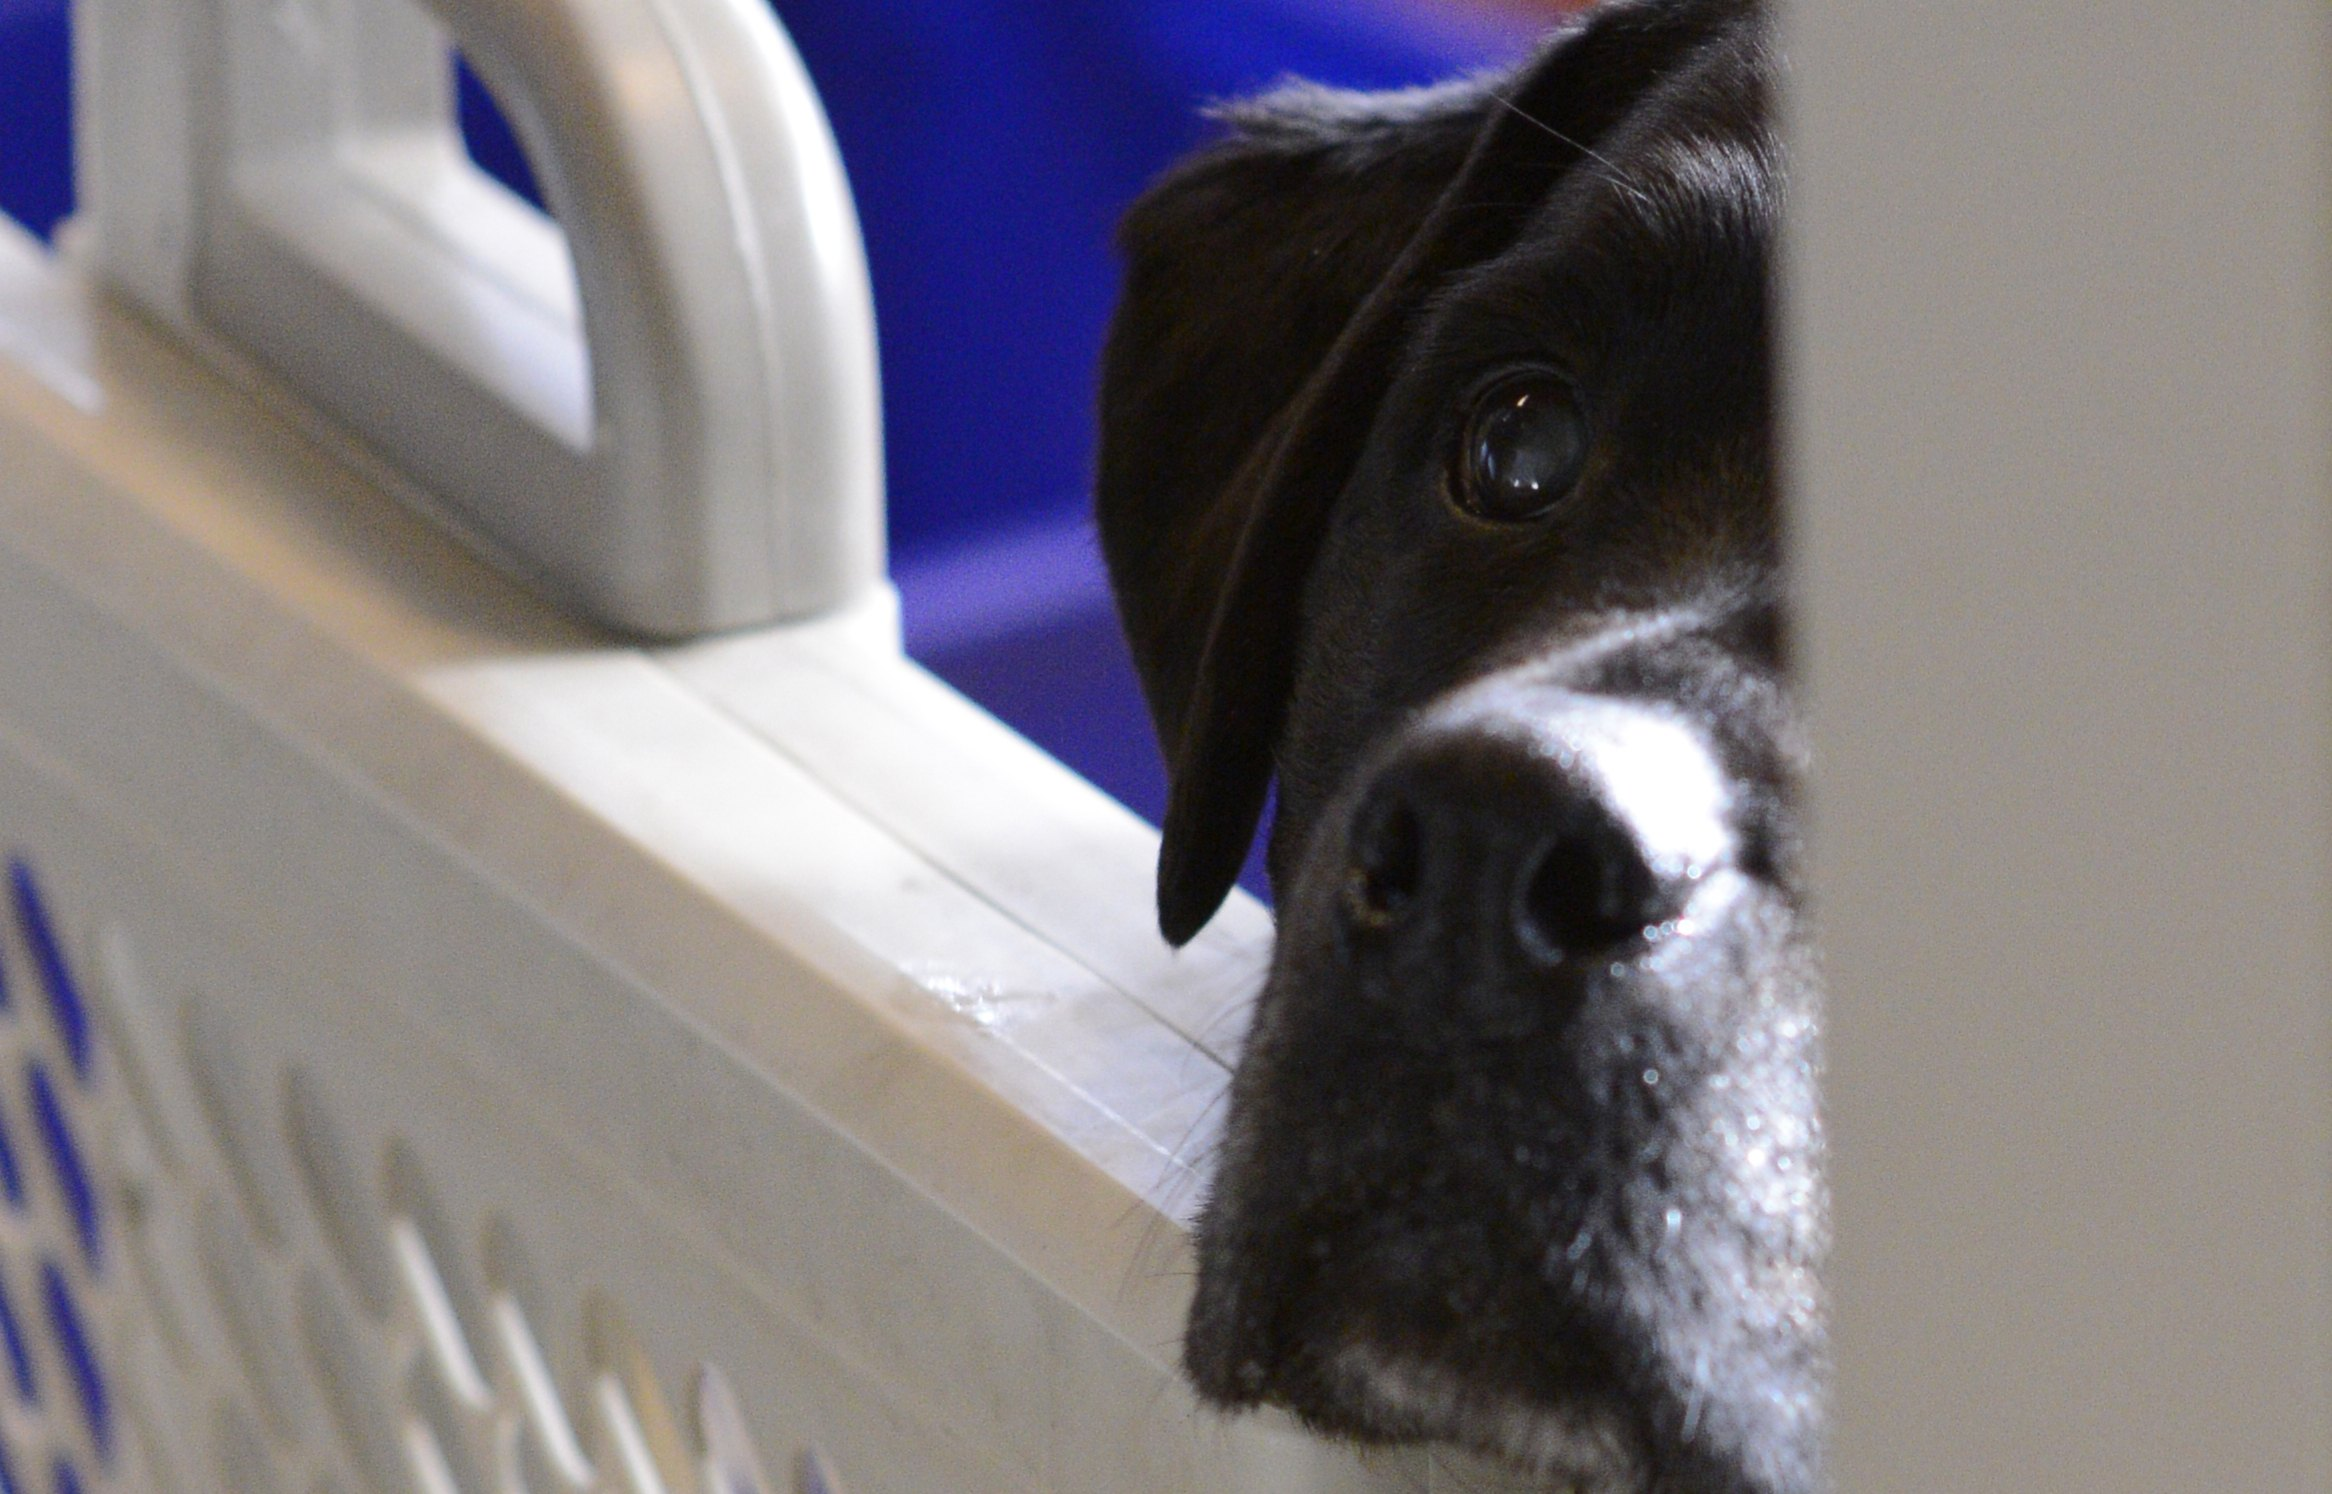 Adopt Me: Dog found wandering East Van needs a home